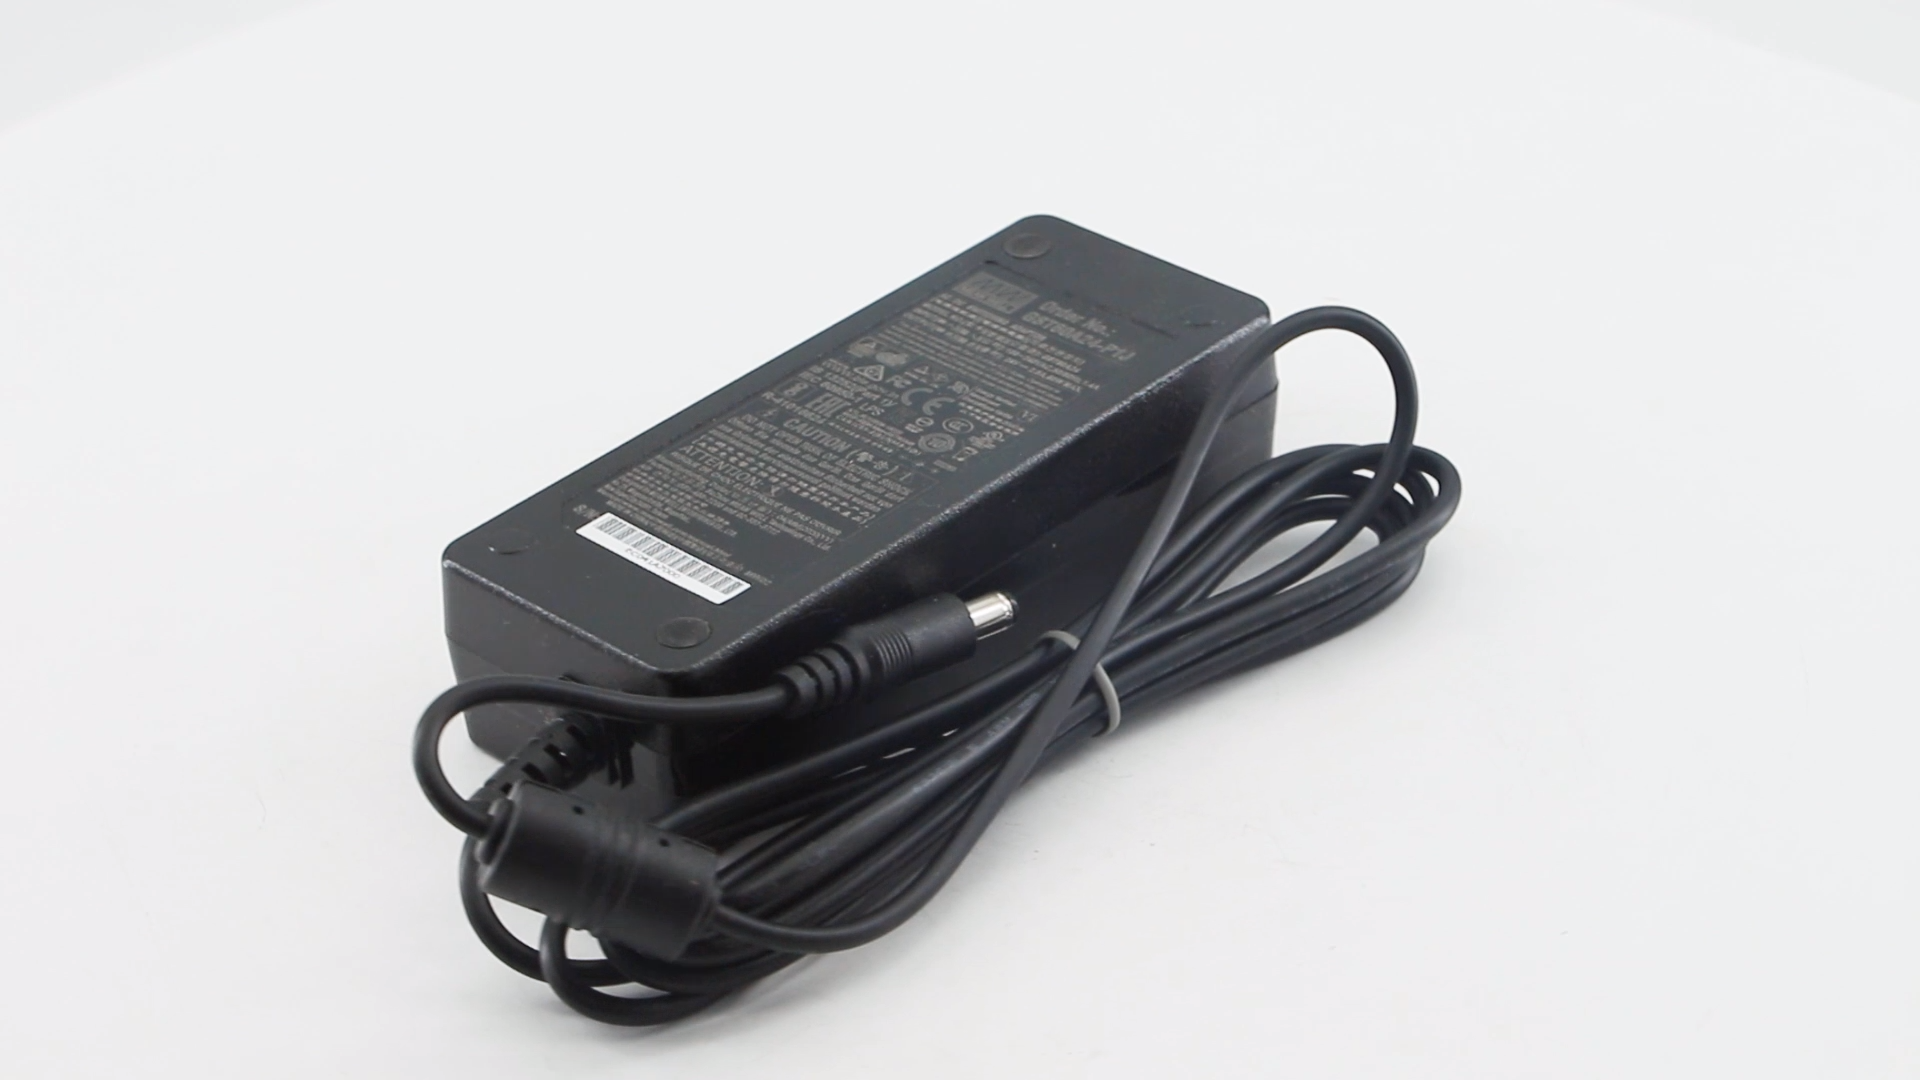 Meanwell GST220A12-R7B Smps Switching Power Adapter 12V 15A 180W Universal Laptop Mobile Charger